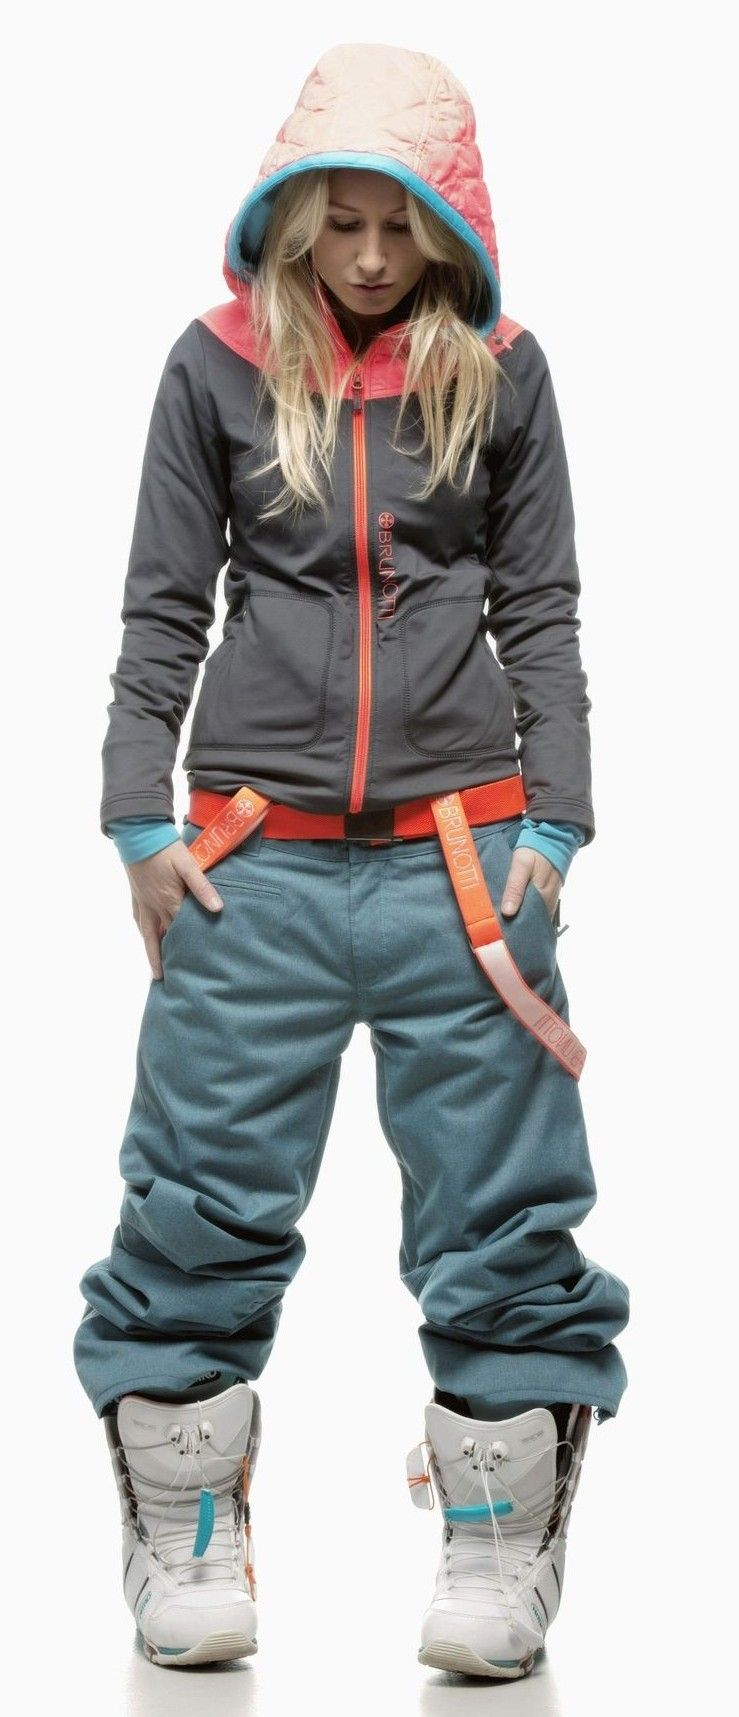 Pin by Dor@ on Hobby  Snowboarding outfit, Snowboard, Skiing outfit